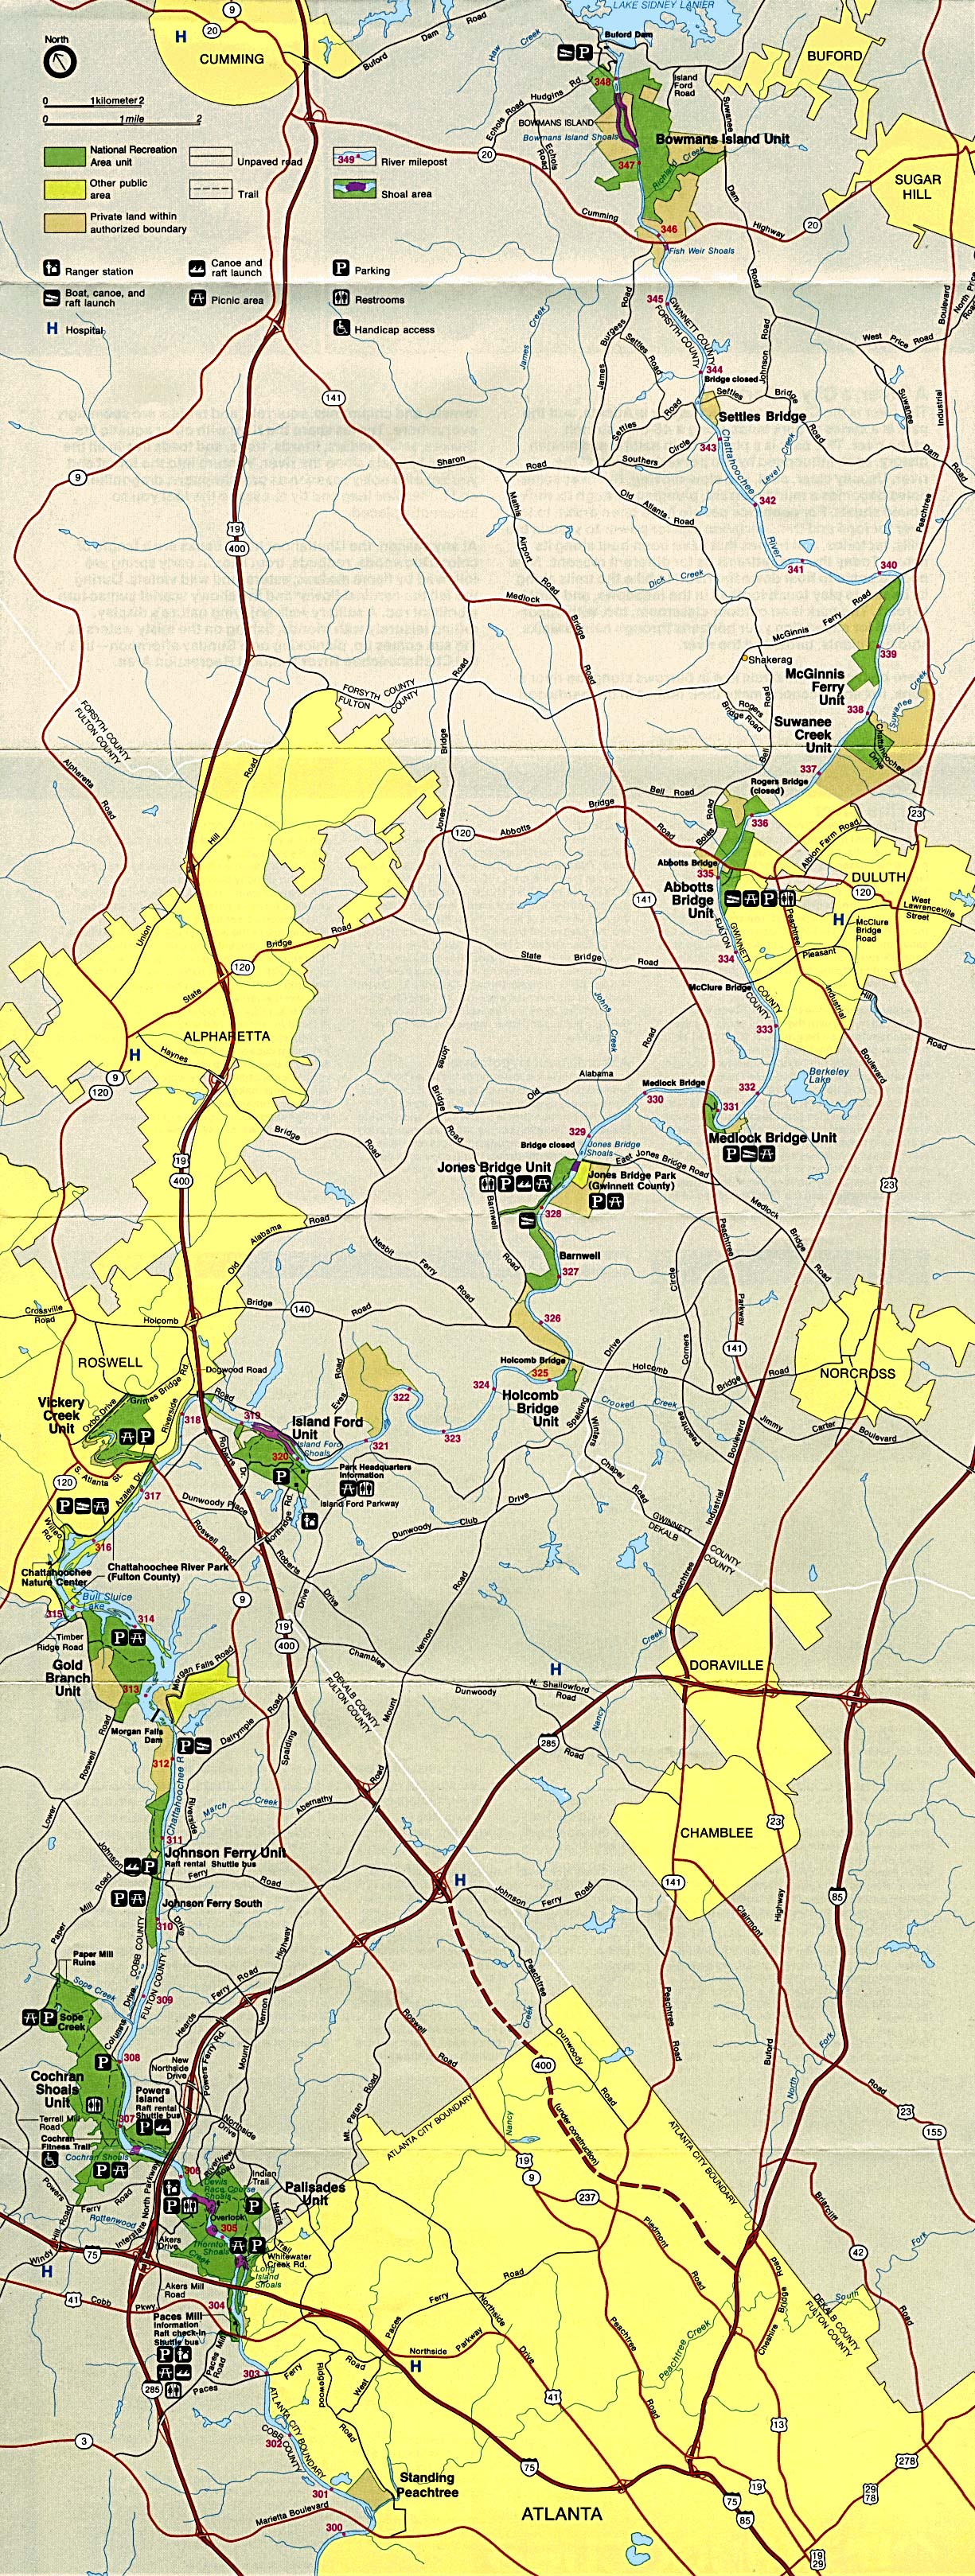 Georgia Maps PerryCastañeda Map Collection UT Library Online - Georgia map chattahoochee river